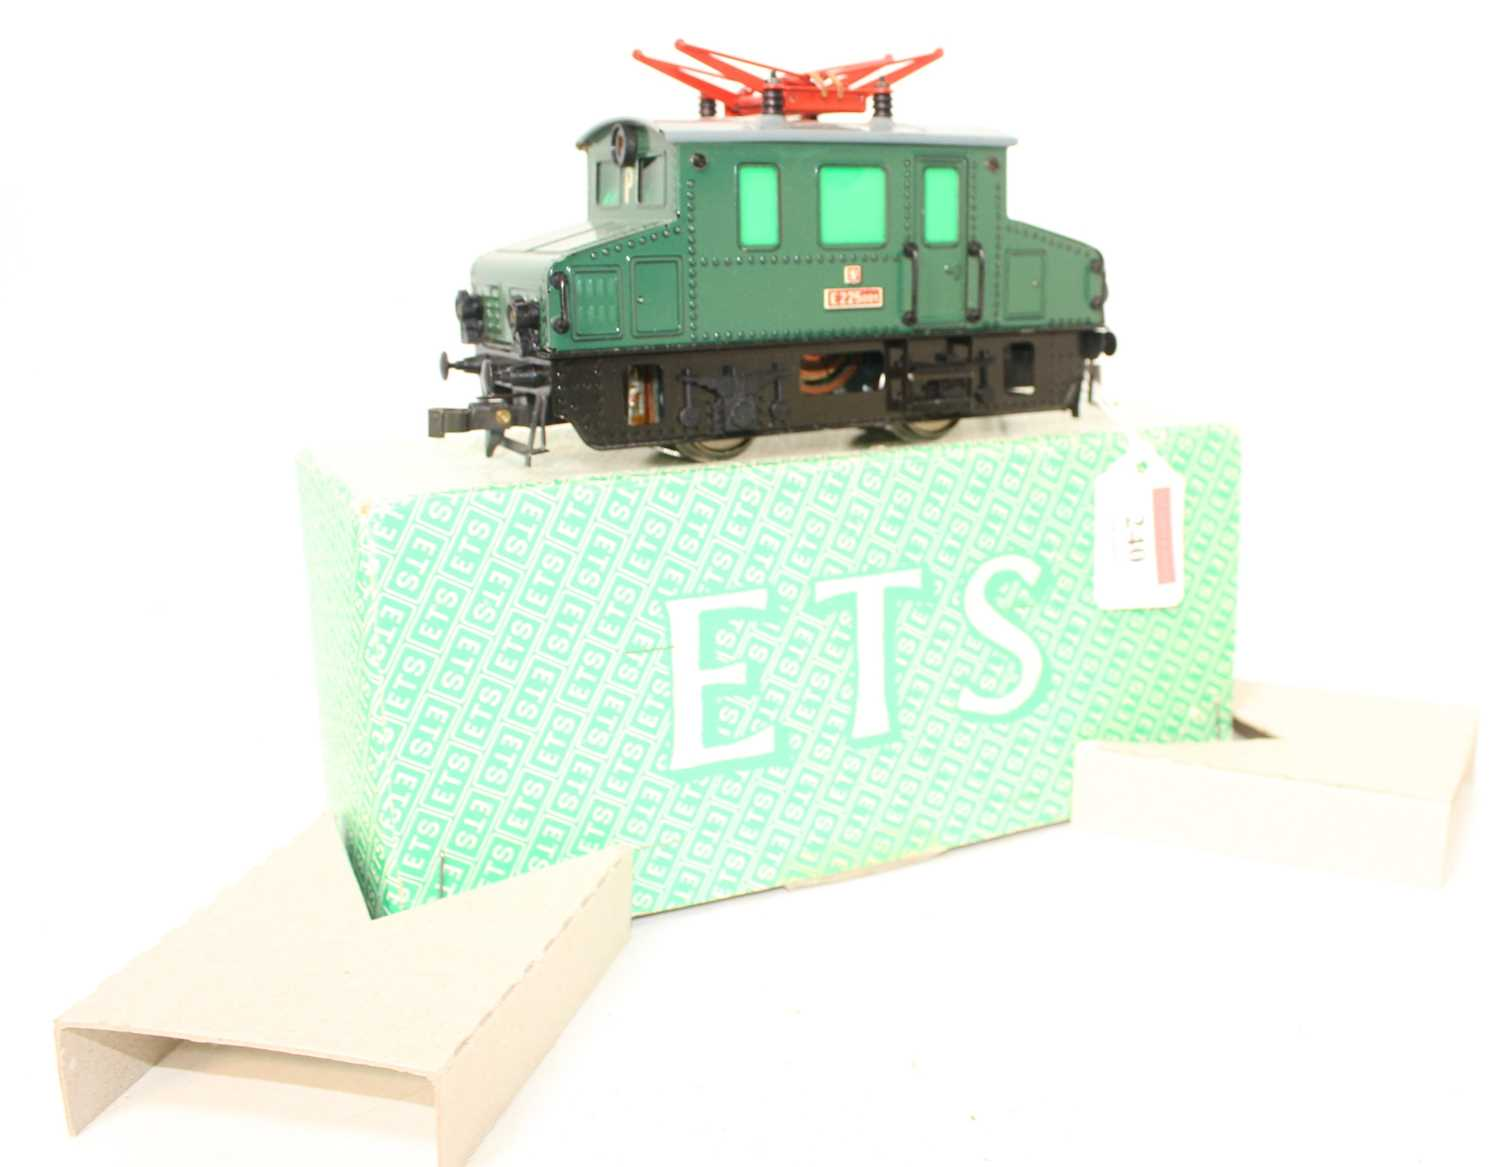 ETS 0-4-0 Electric Centre Car Loco E225001 Green Body, black chassis, grey roof, red pantographs ( - Image 2 of 2